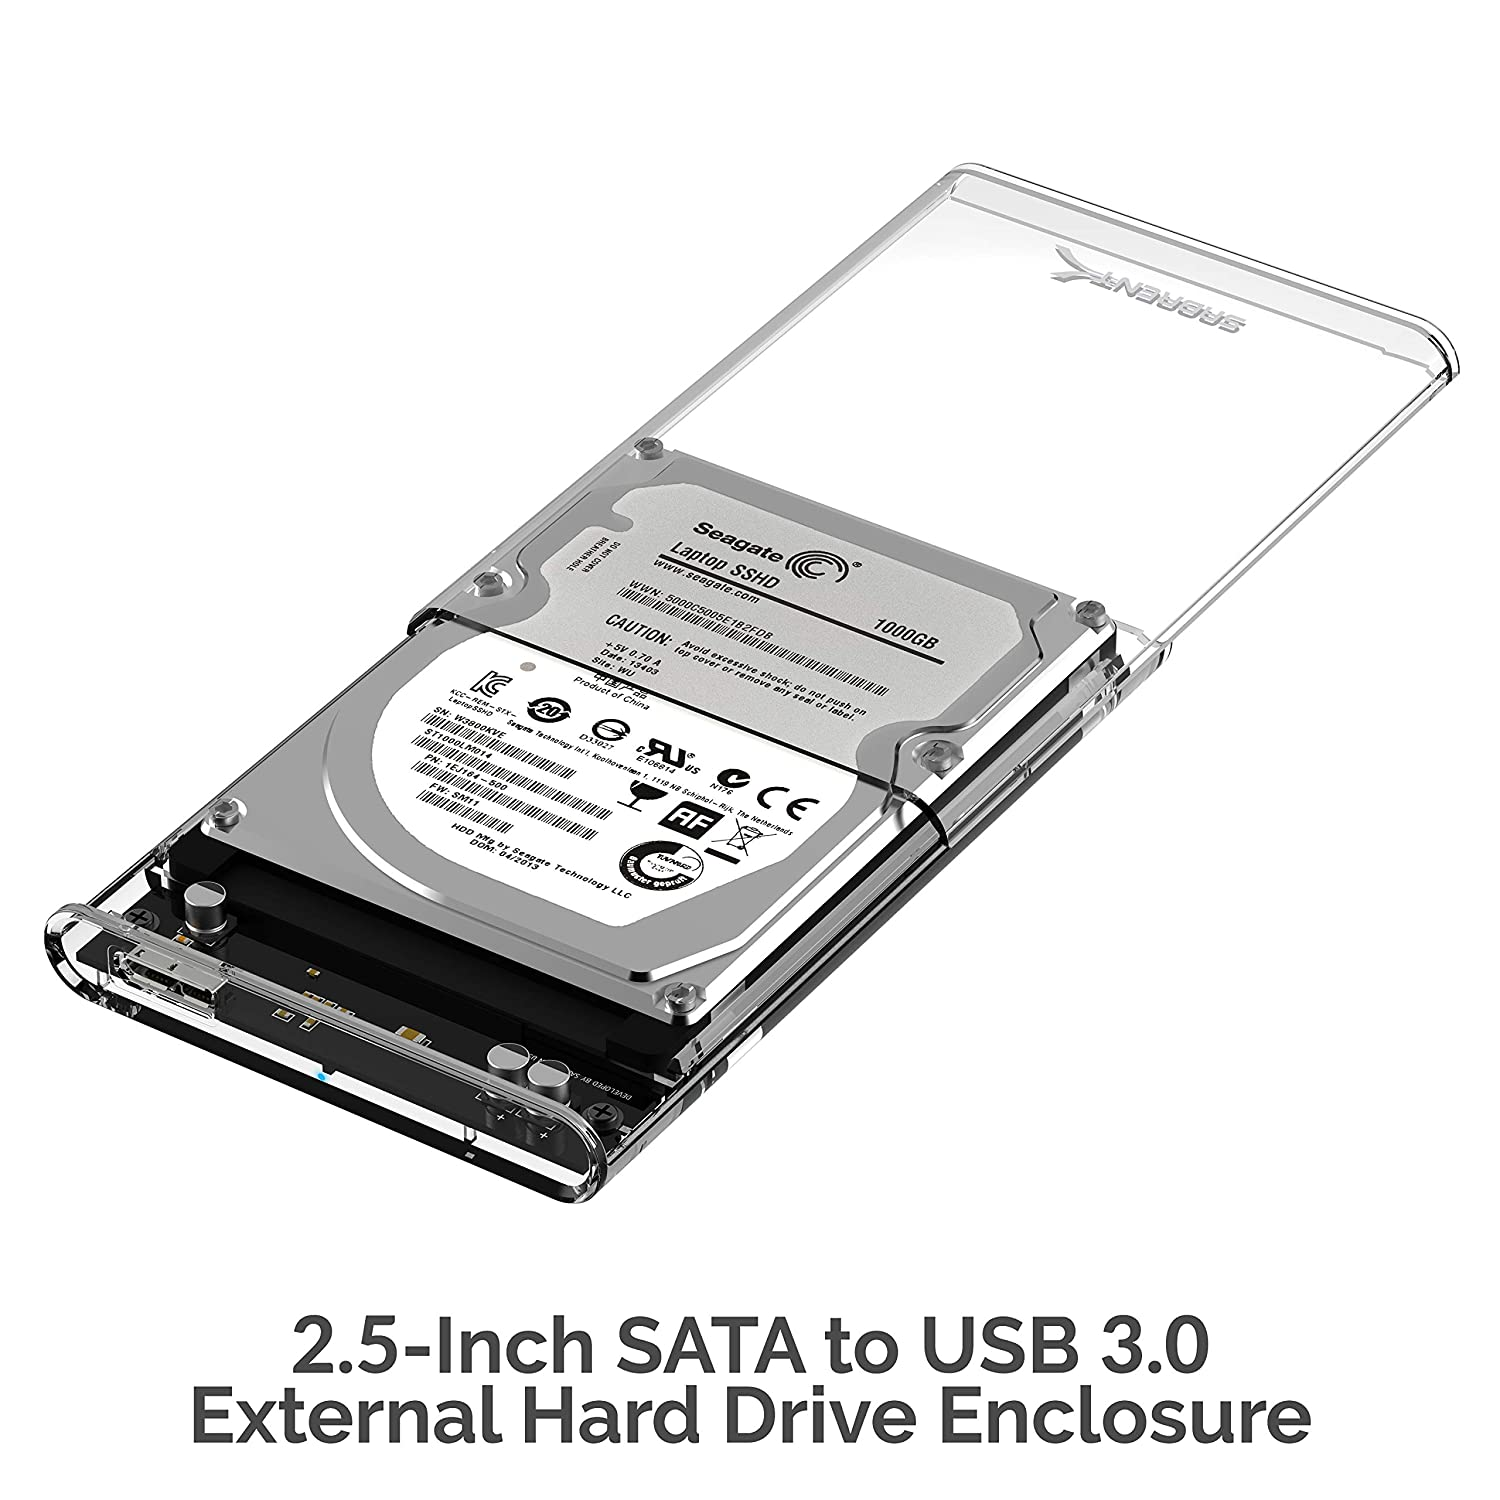 Sabrent 2.5-Inch SATA to USB 3.0 Tool-Free Clear External Hard Drive Enclosure [Optimized for SSD, Support UASP SATA III] (EC-OCUB).